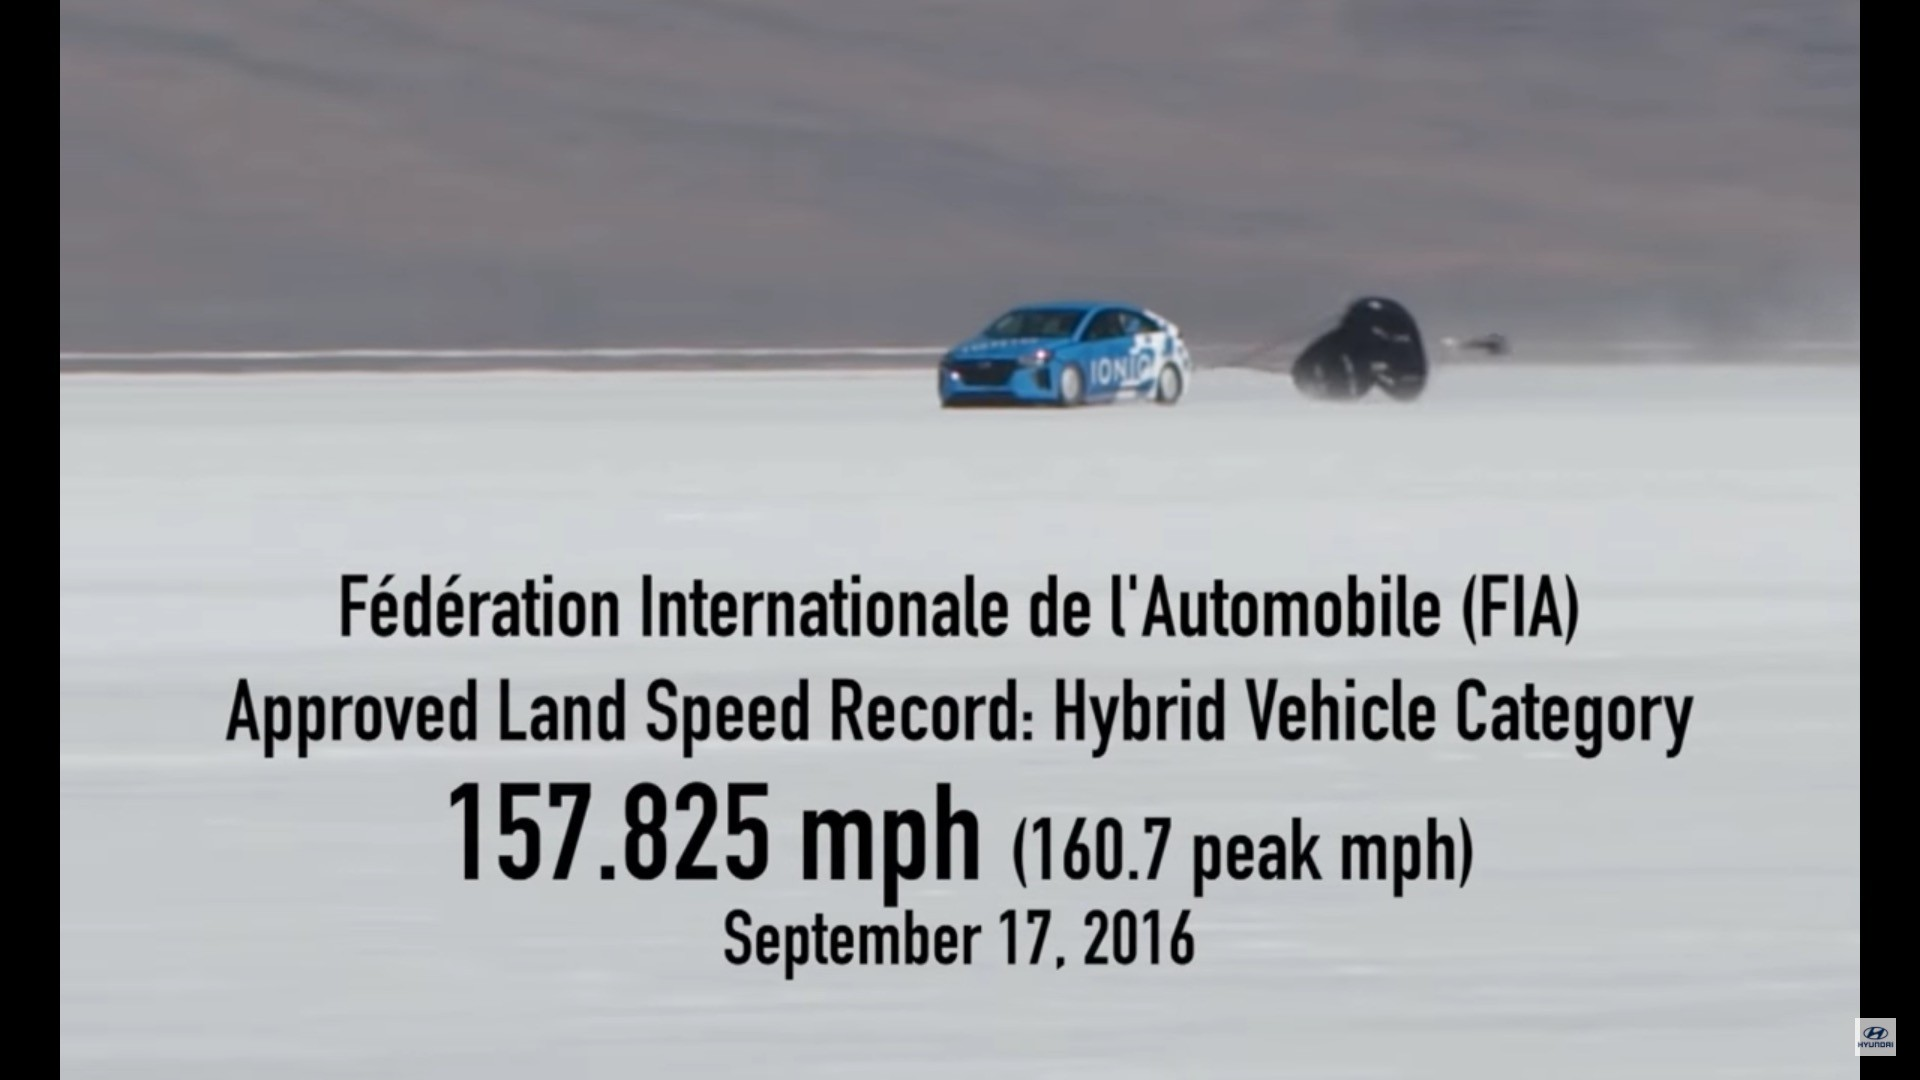 production based hybrid vehicle land speed record 157 825 mph in a